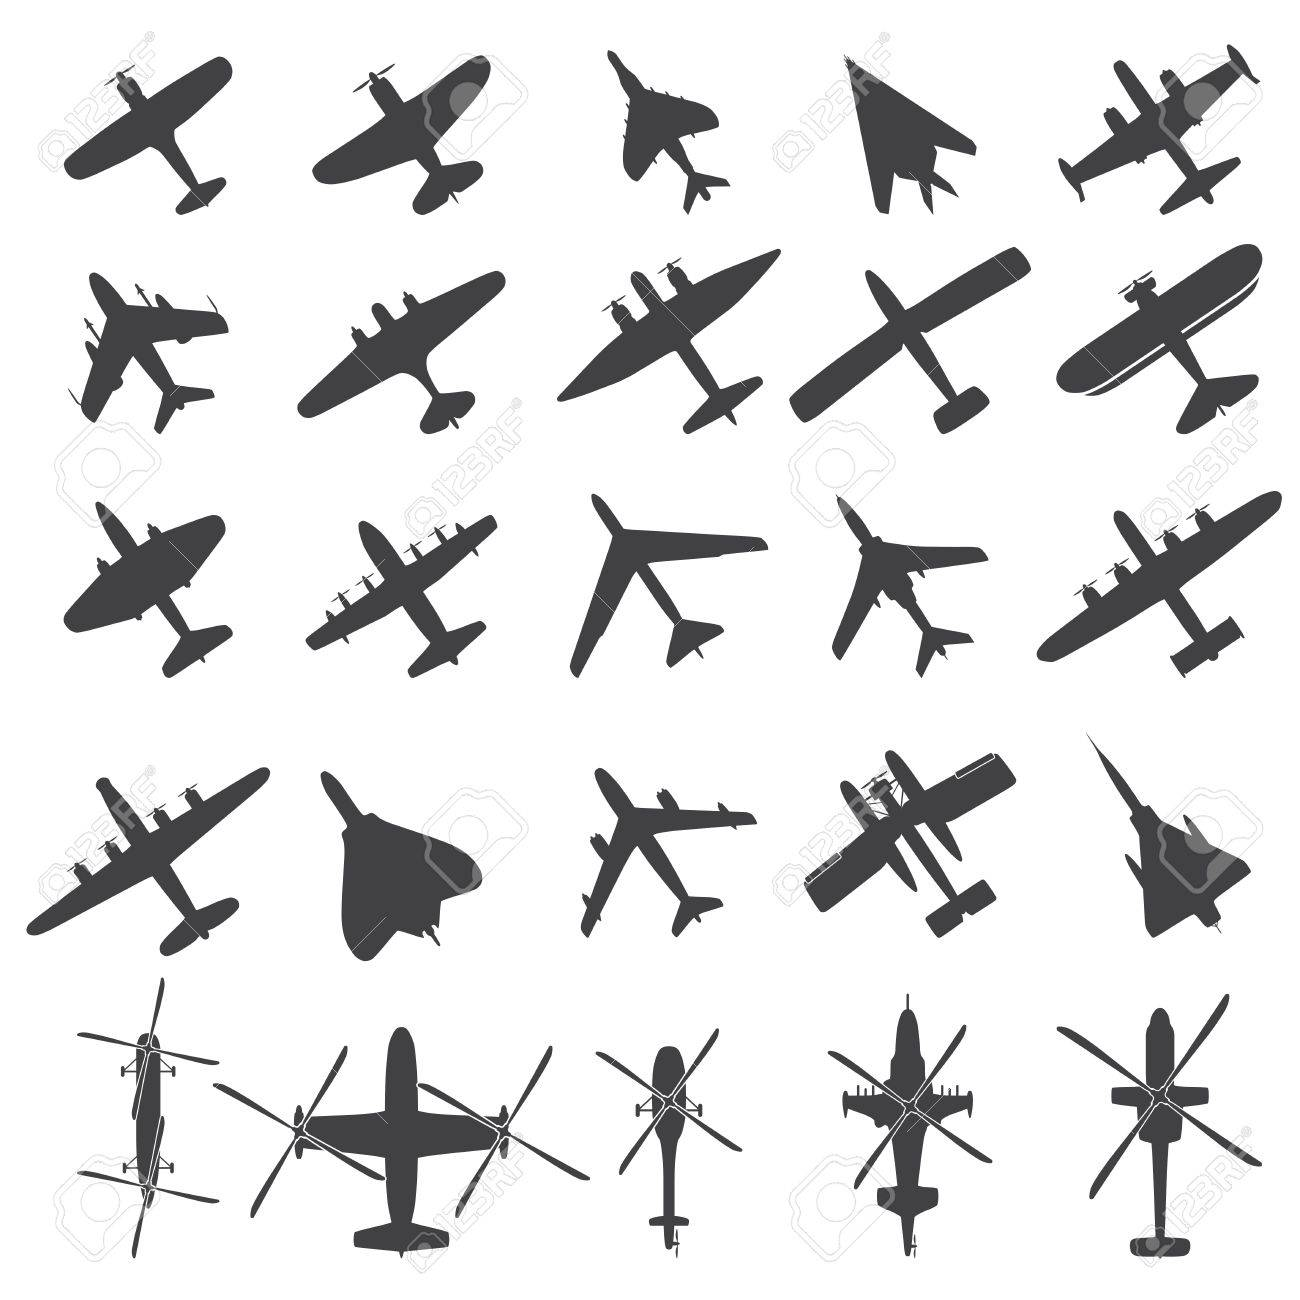 Icons set Airplanes Stock Vector - 17187287